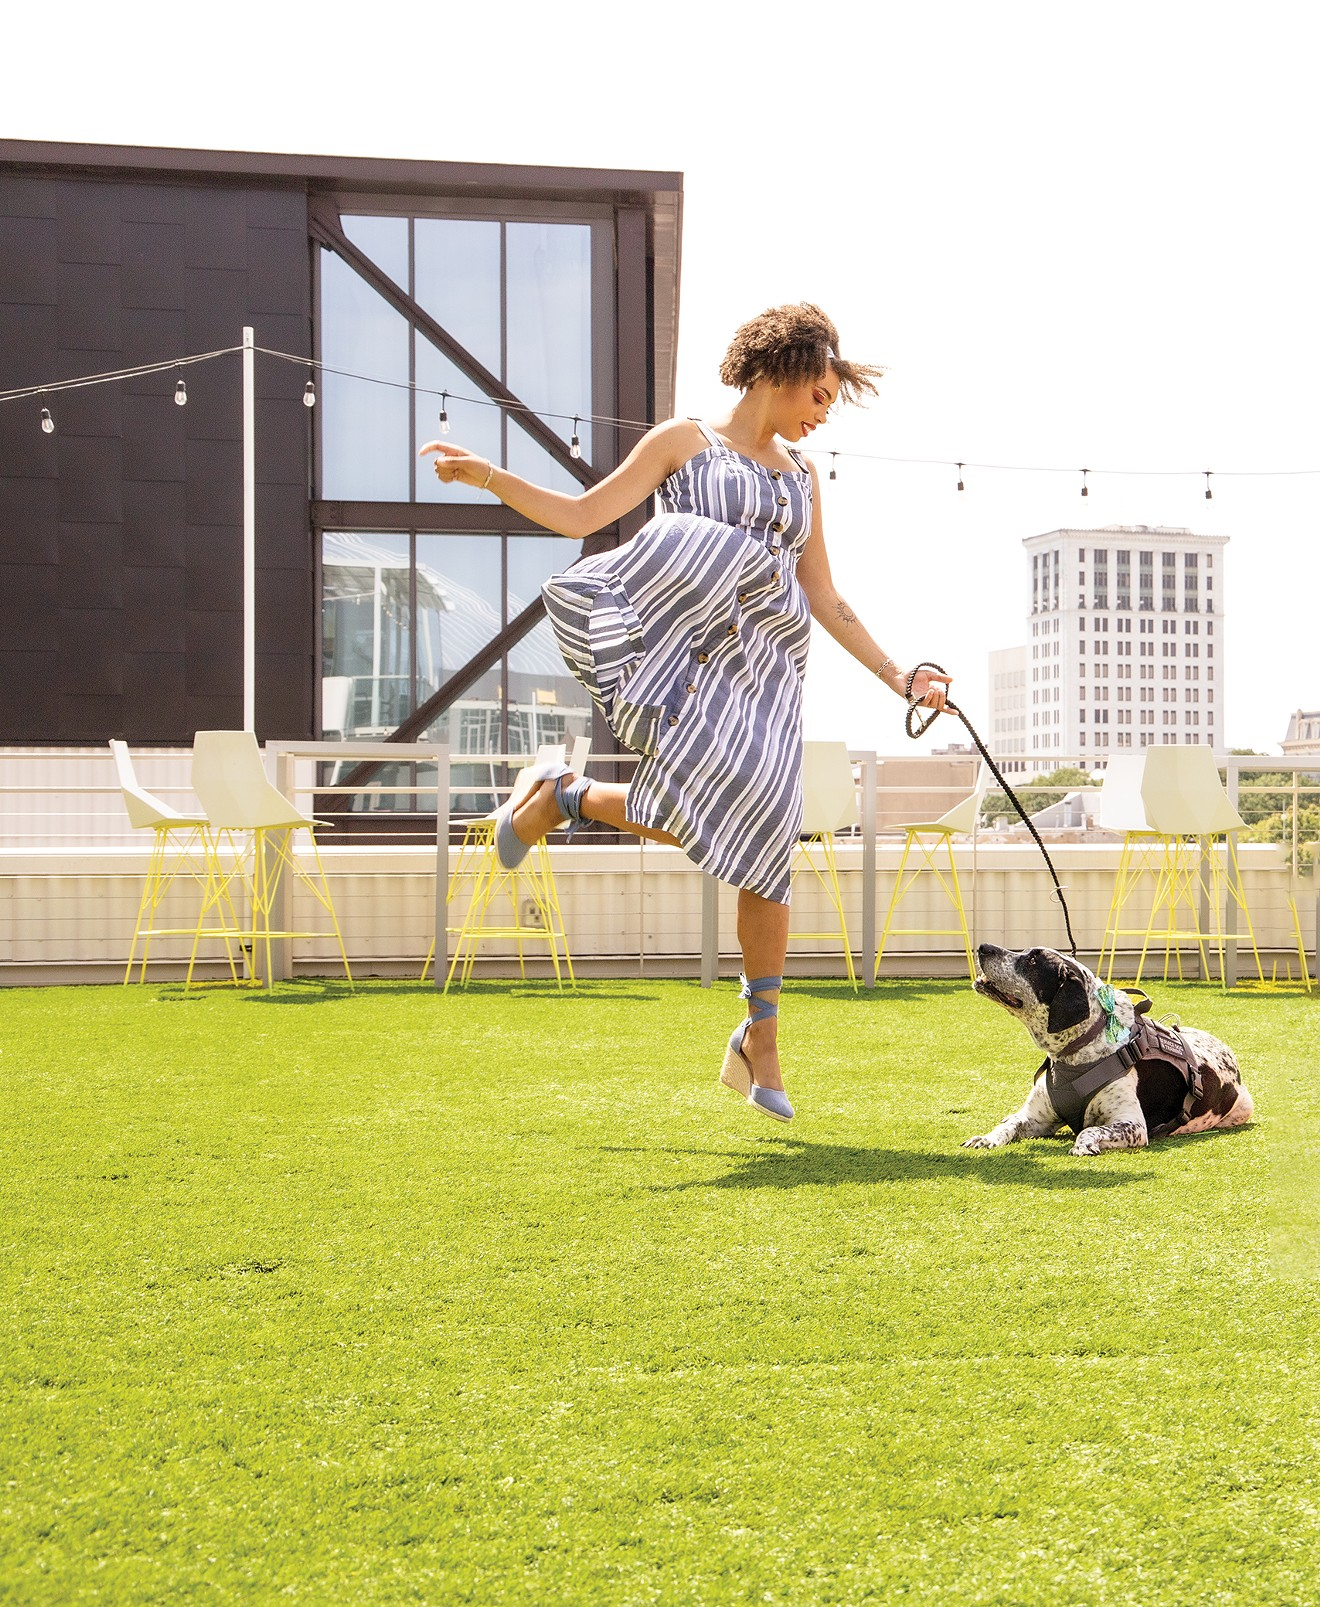 Sadé Harris rejoices on the turf at Electric Moon with her service dog Bambi as she looks forward to the upcoming event, Savannah Carnaval, to be held at Plant Riverside District to benefit the SD Gunner Fund.